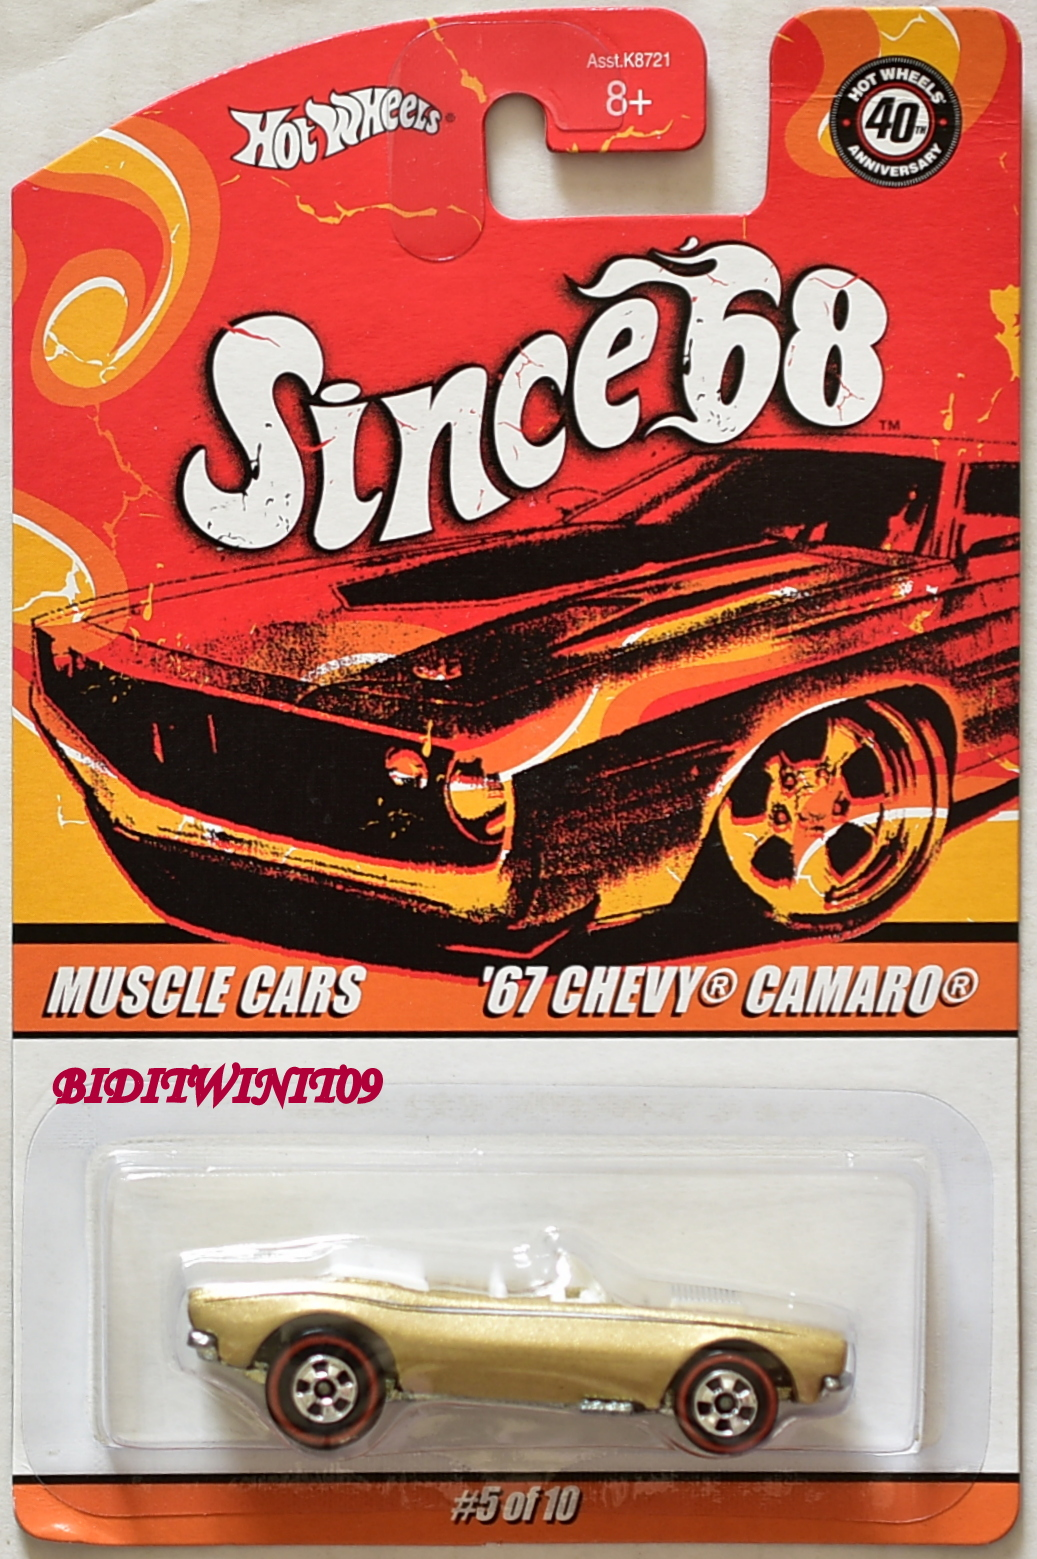 HOT WHEELS SINCE 68 MUSCLE CARS '67 CHEVY CAMARO GOLD